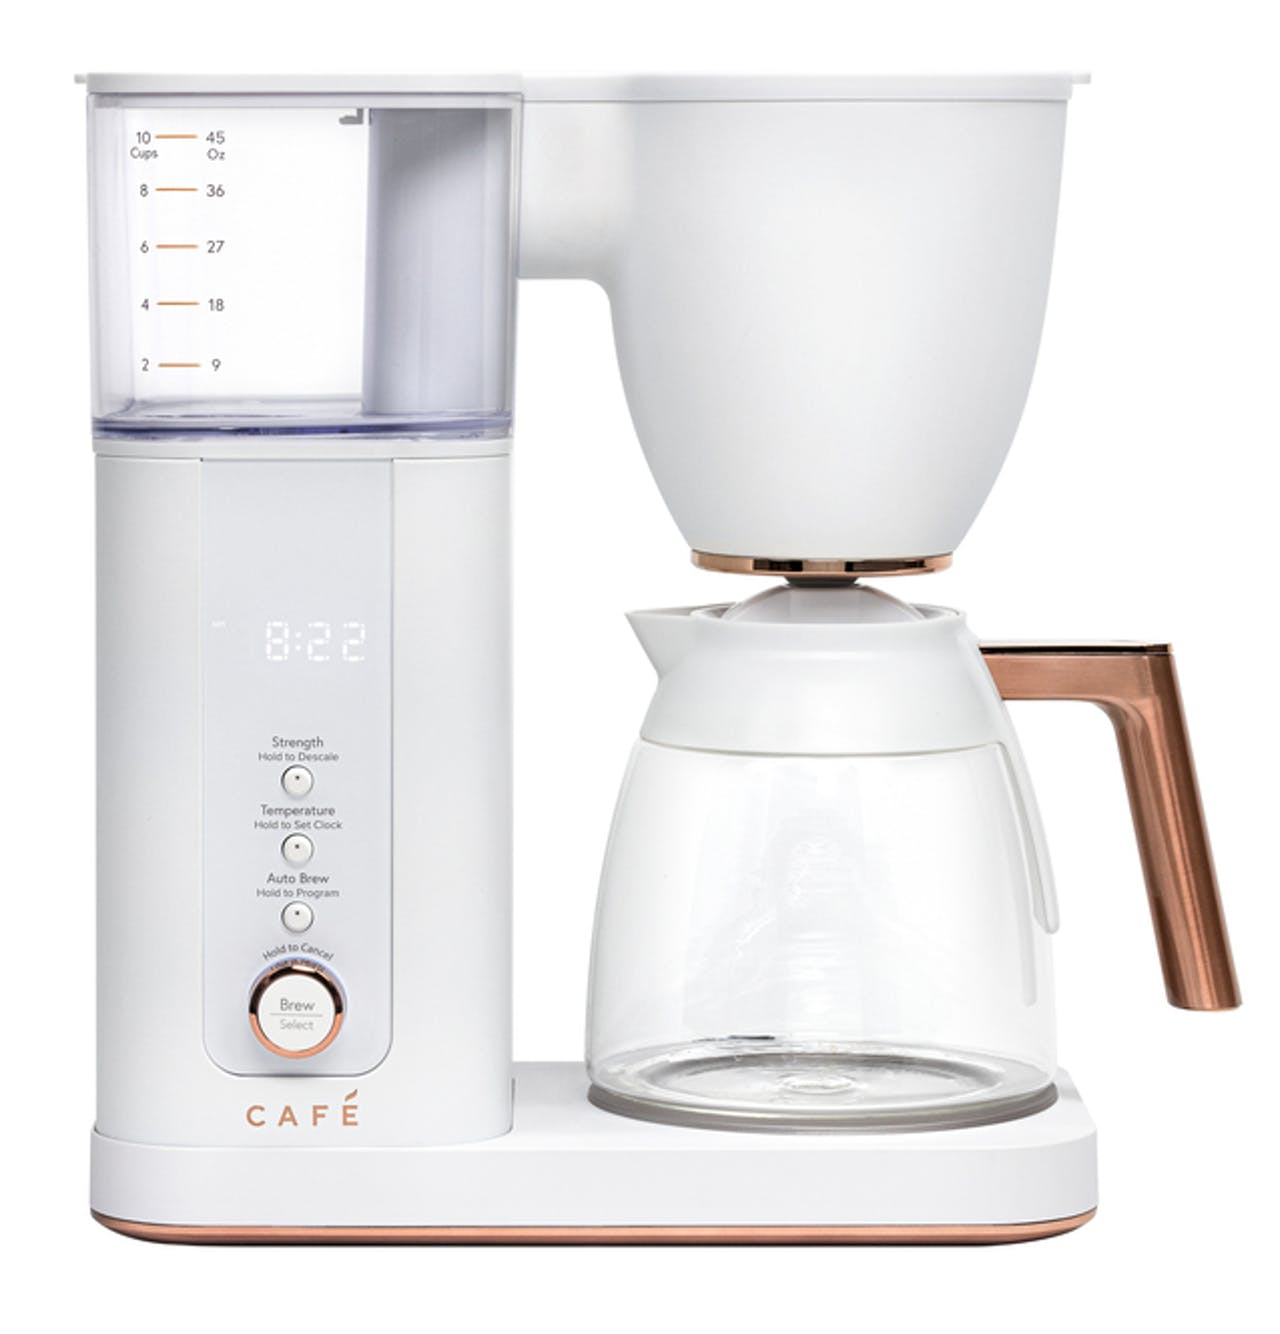 Café Specialty Drip Coffee Maker with Glass Carafe in Matte White